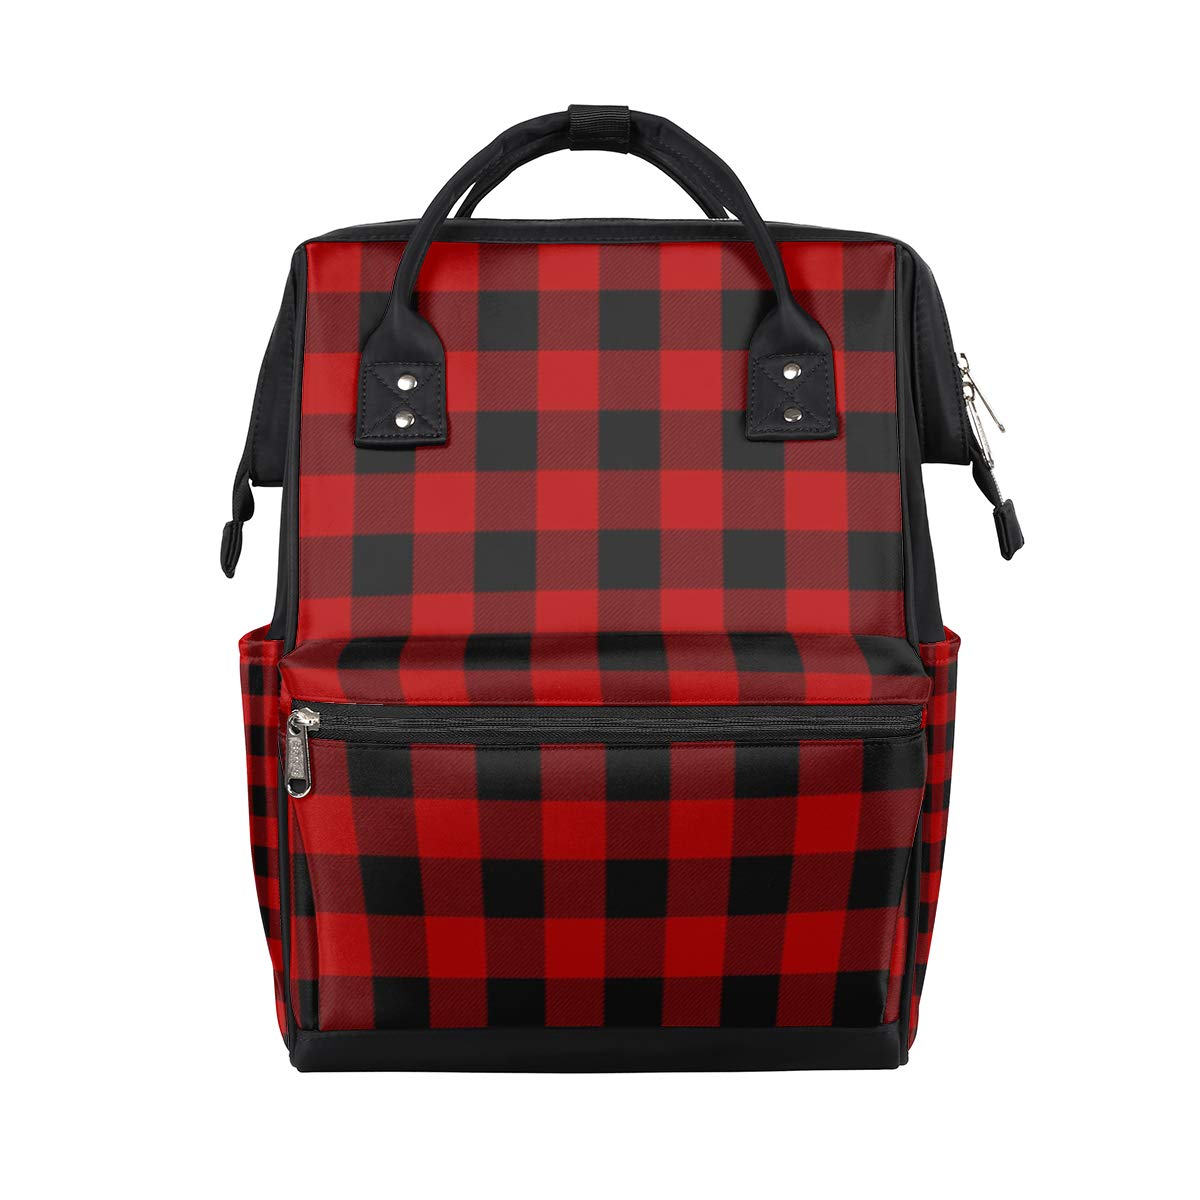 TropicalLife Red Lumberjack Plaid Diaper Backpack Large Capacity Baby Bags Multi-Function Zipper Casual Travel Backpacks for Mom Dad Unisex